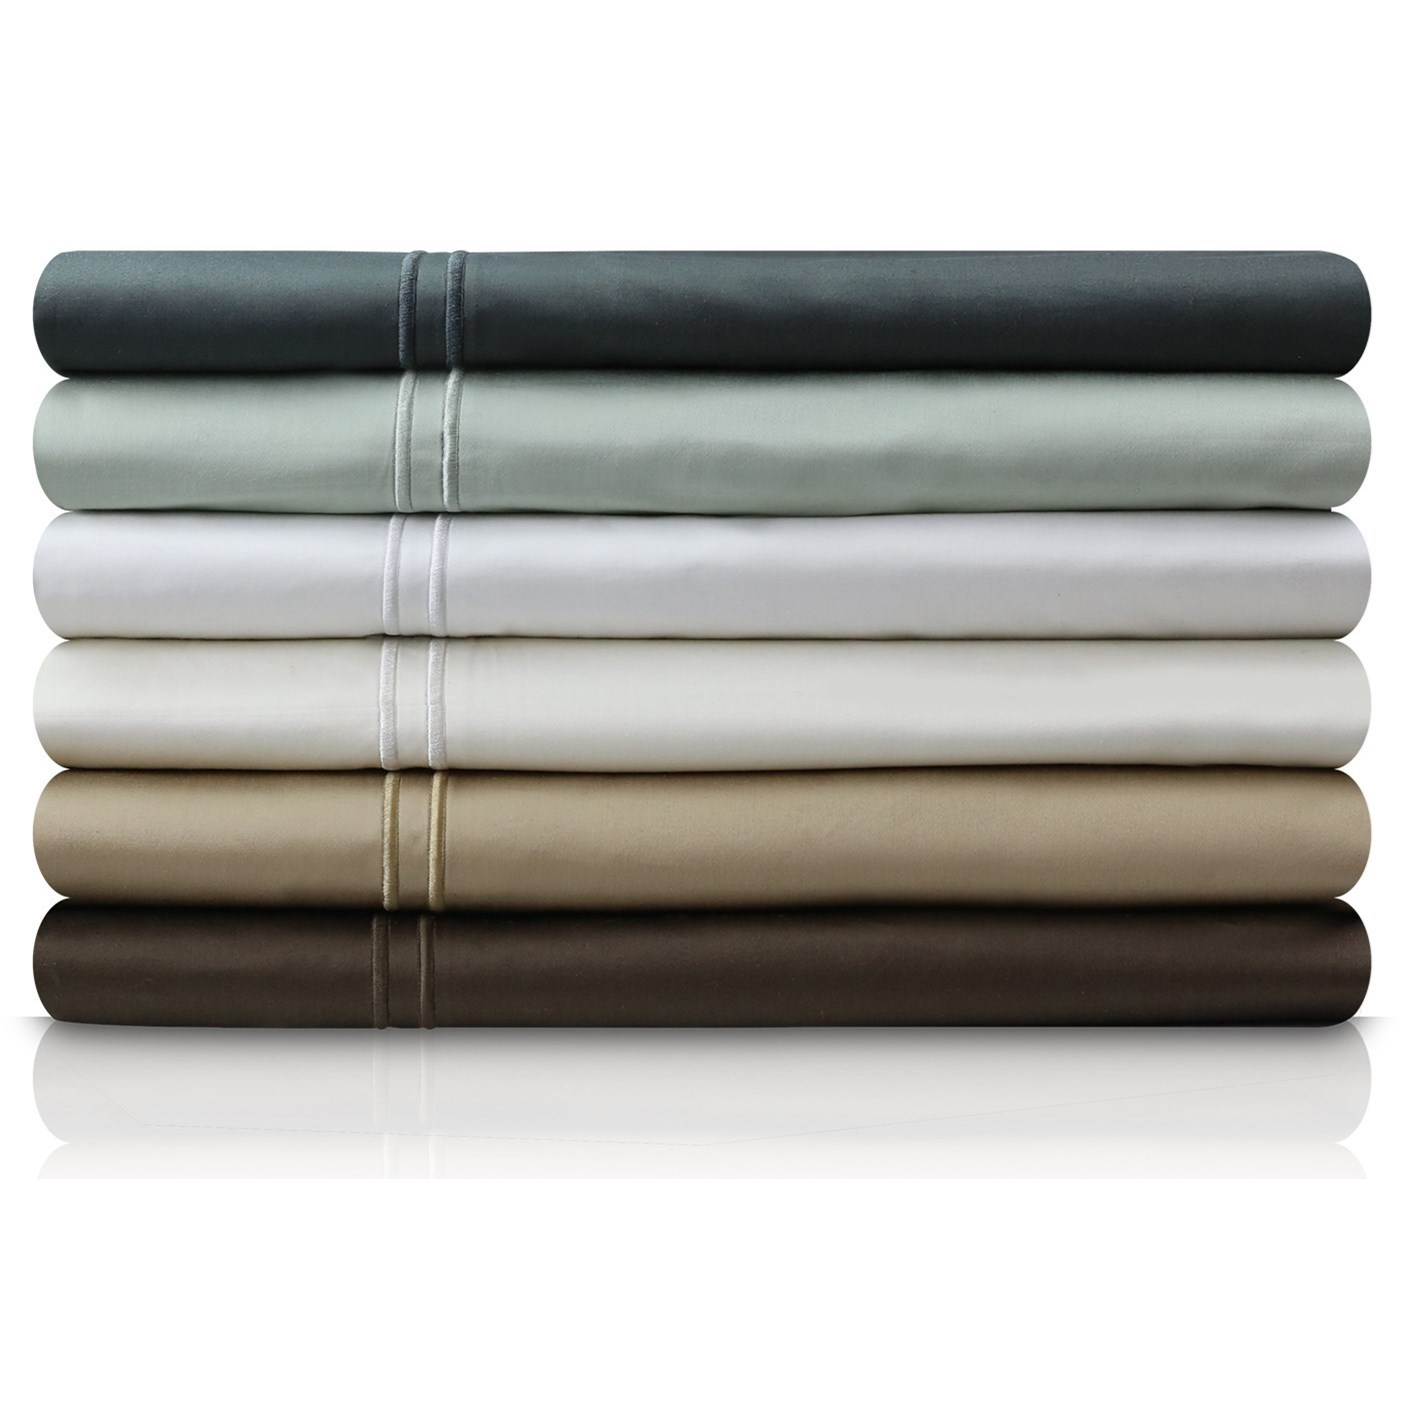 Malouf Egyptian Cotton King 600 TC Egyptian Cotton Pillowcases  - Item Number: MA06KKWHPC